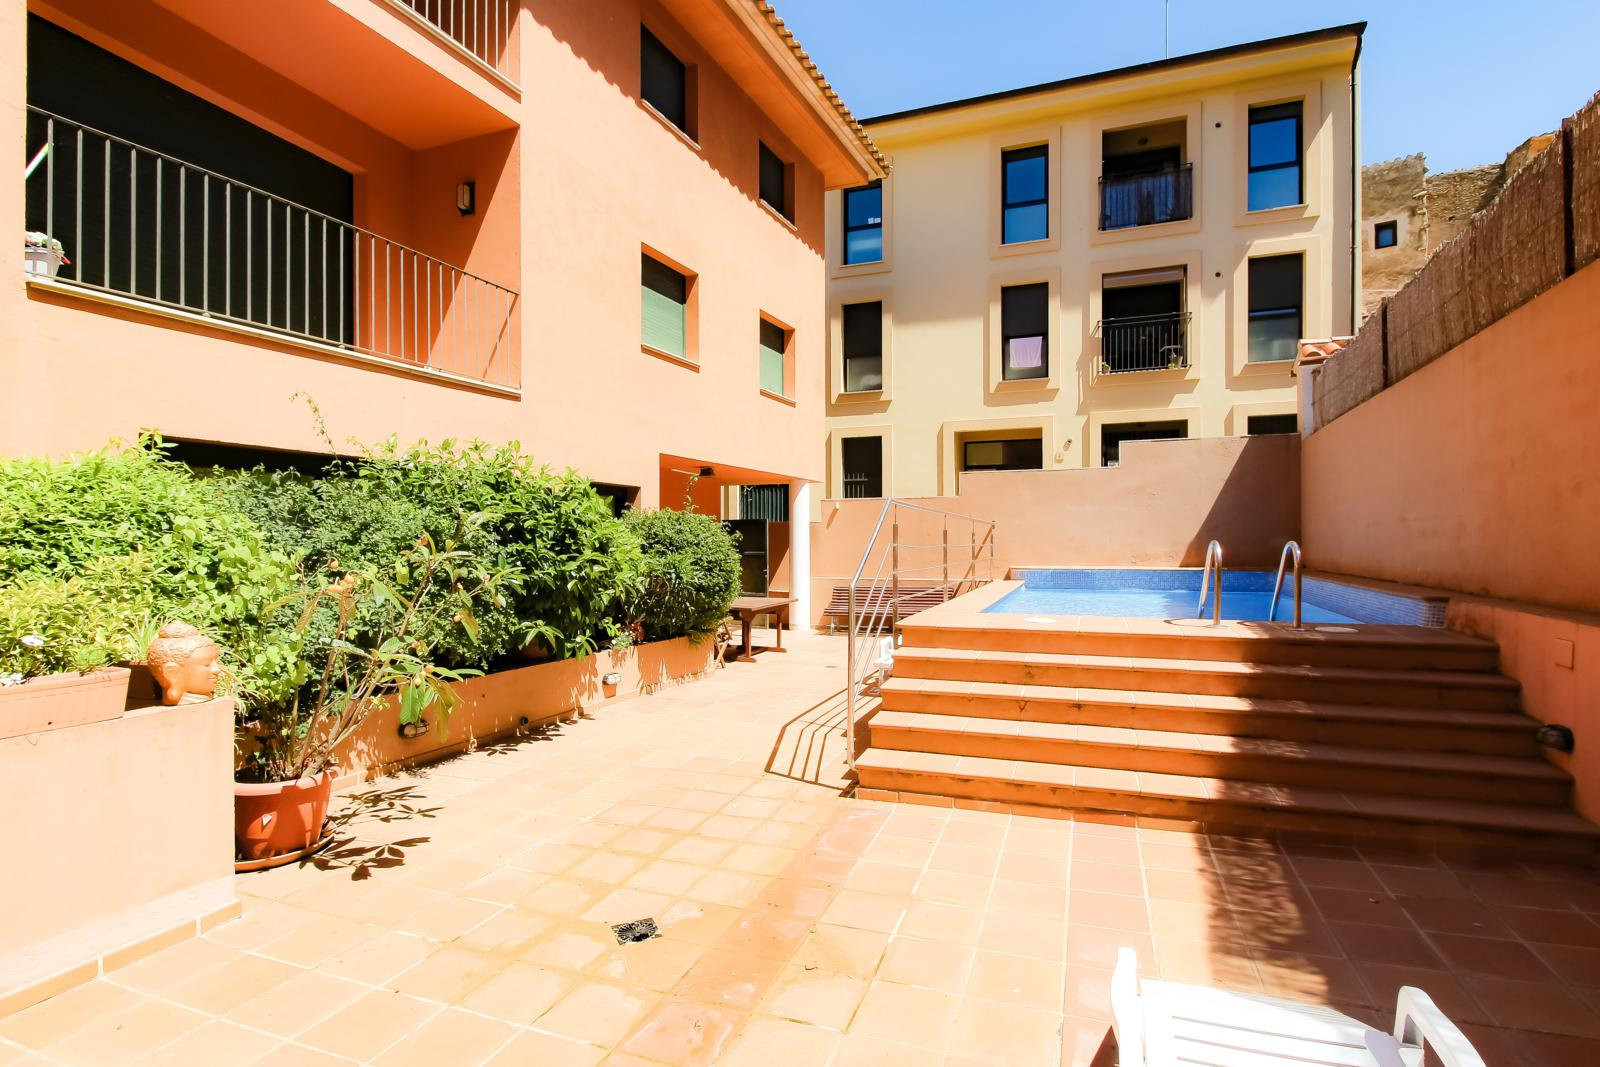 SANT JOSEP  2 1    HUTG 001224,  apartment on holiday rental for a máximum of 4/6 people Building of apartments of 3 floors, located in.....